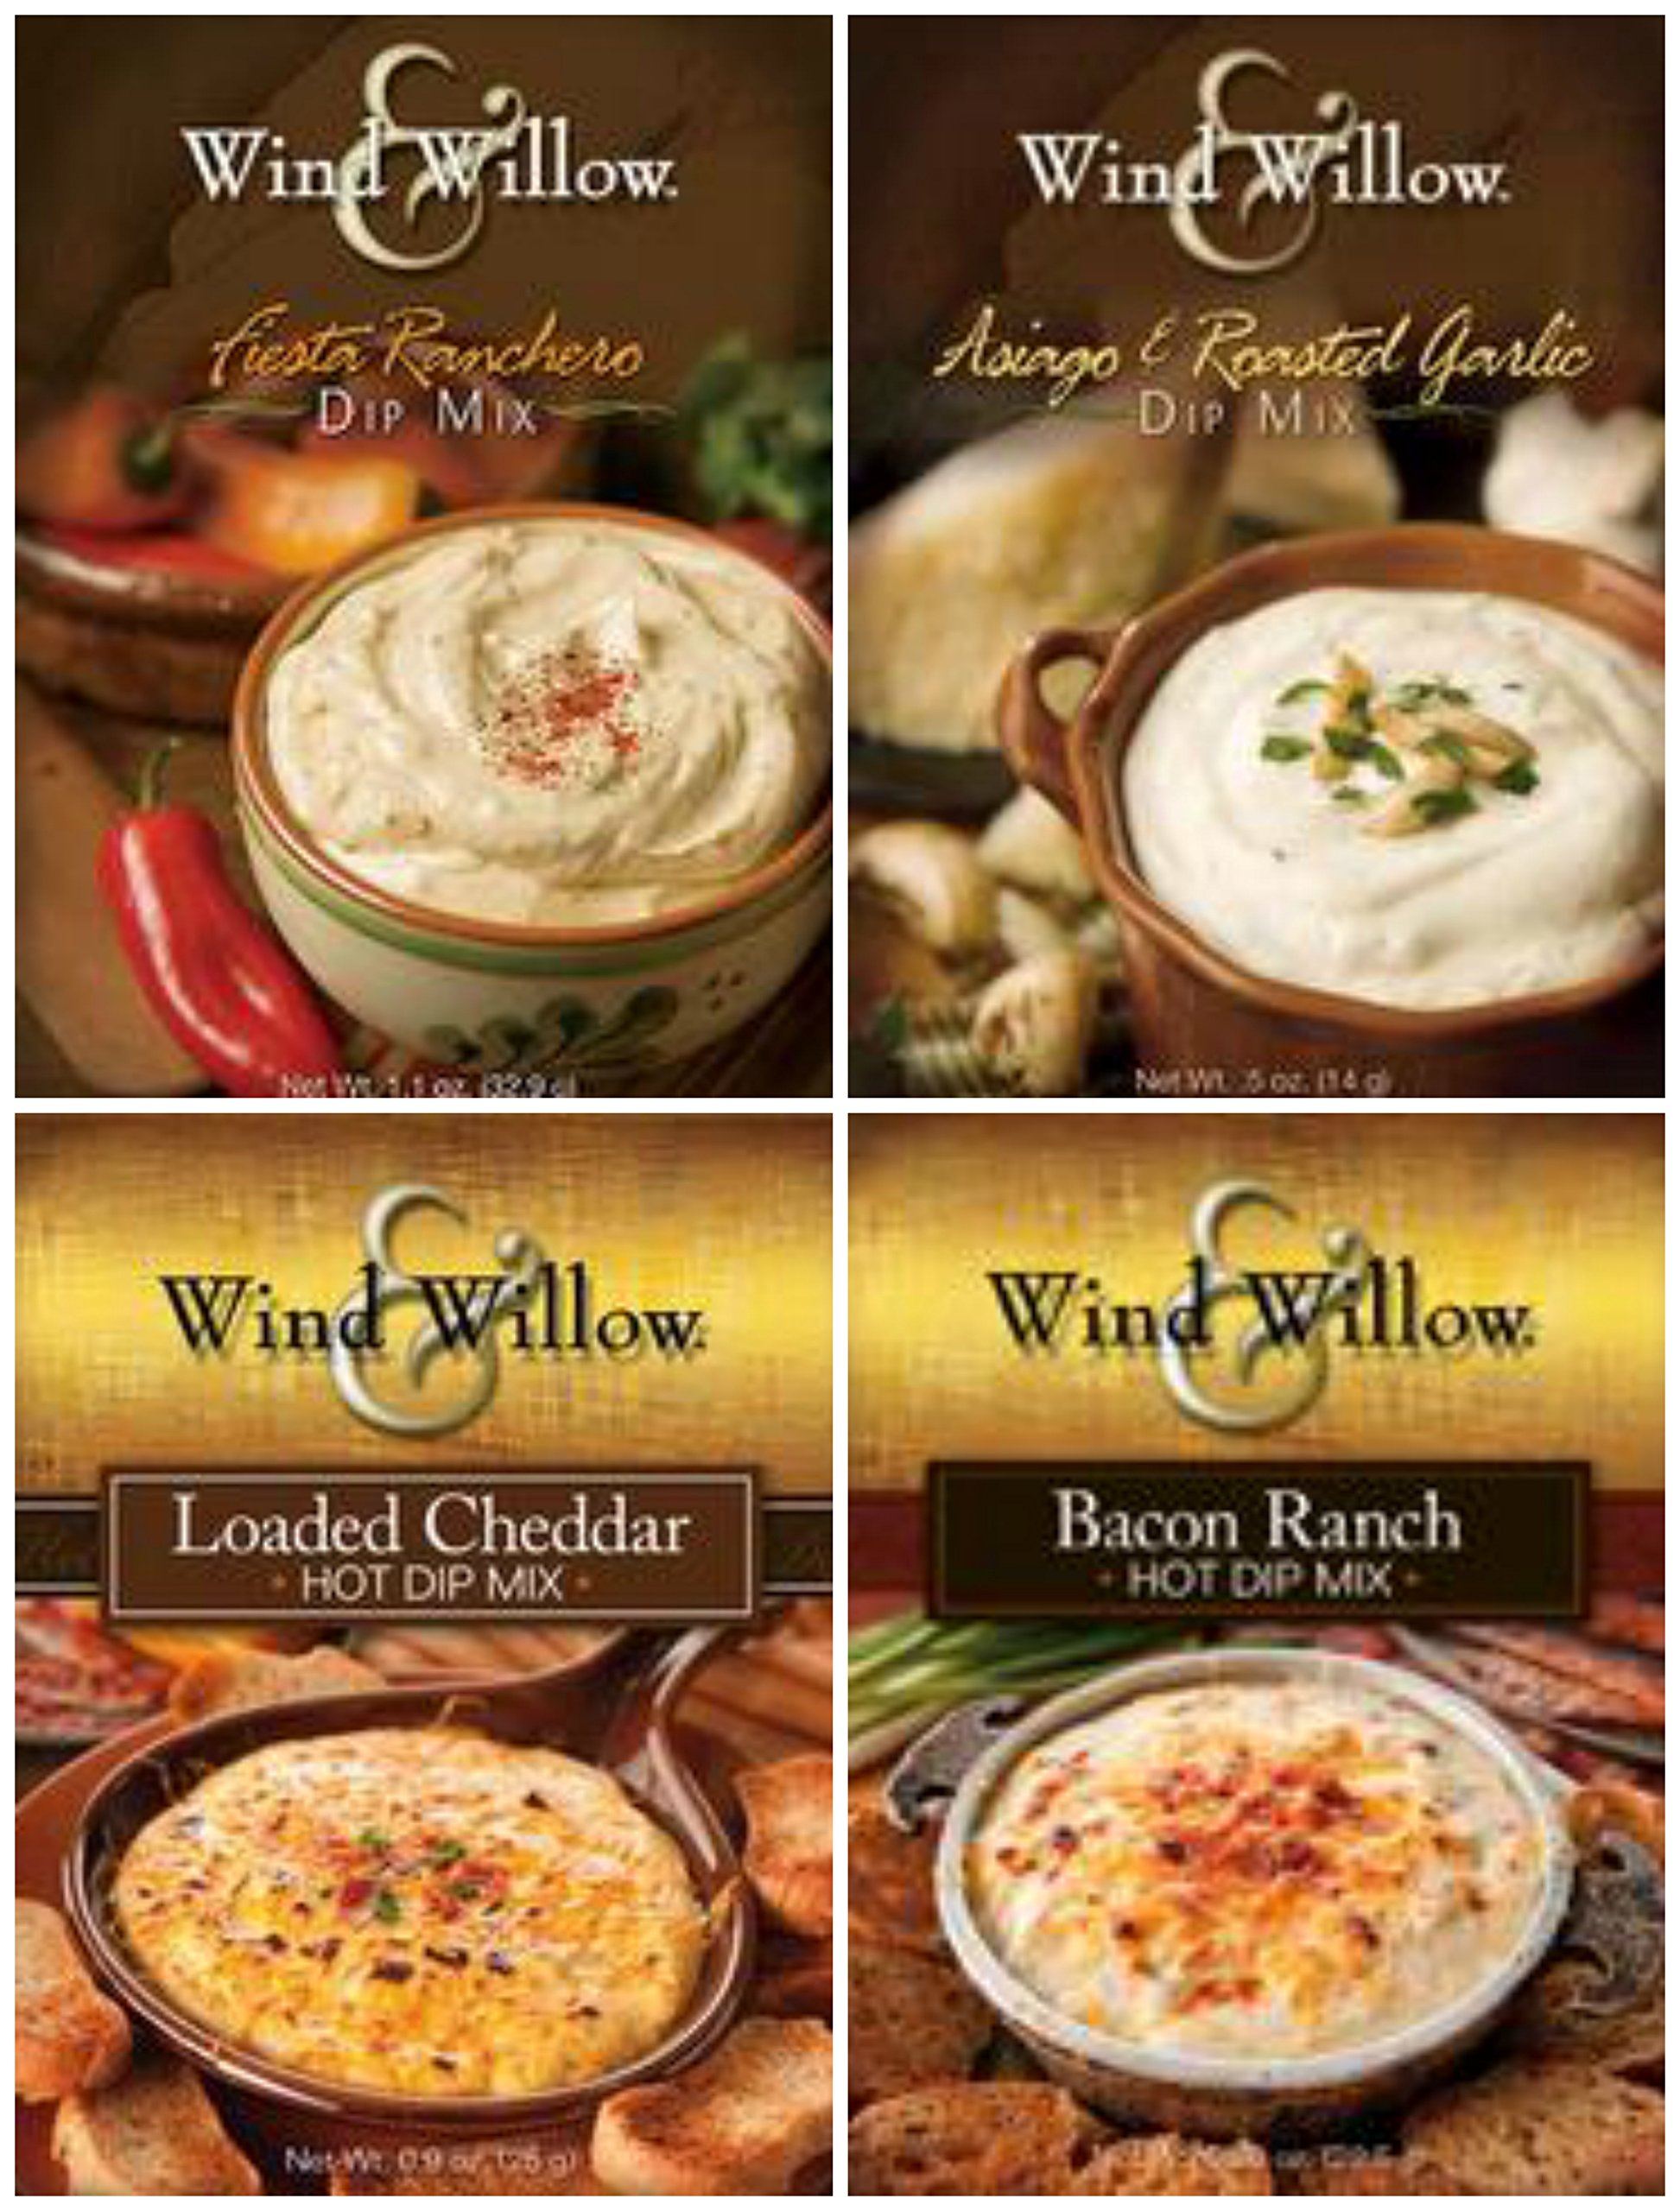 Wind & Willow Dip Mix 4 Flavor Variety Bundle: Loaded Cheddar, Bacon Ranch, Asagio & Roasted Garlic and Fiesta Ranchero (4 Packs Total) by Wind & Willow